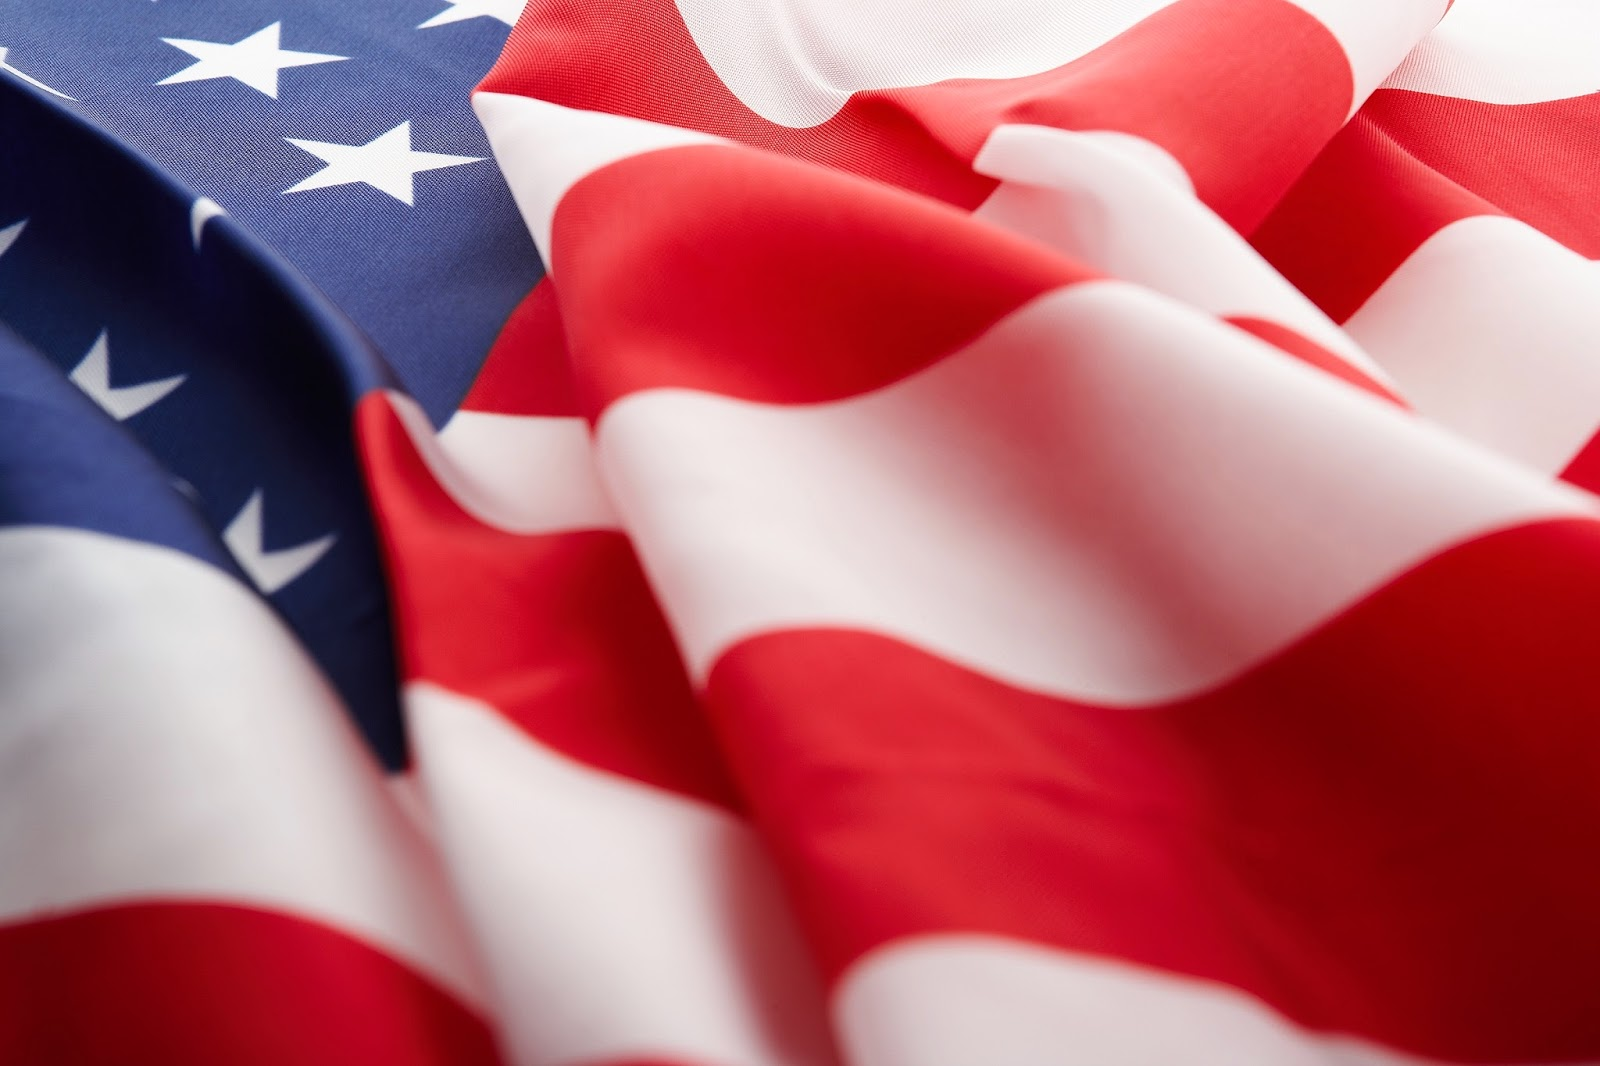 American Flag Pictures Wallpaper